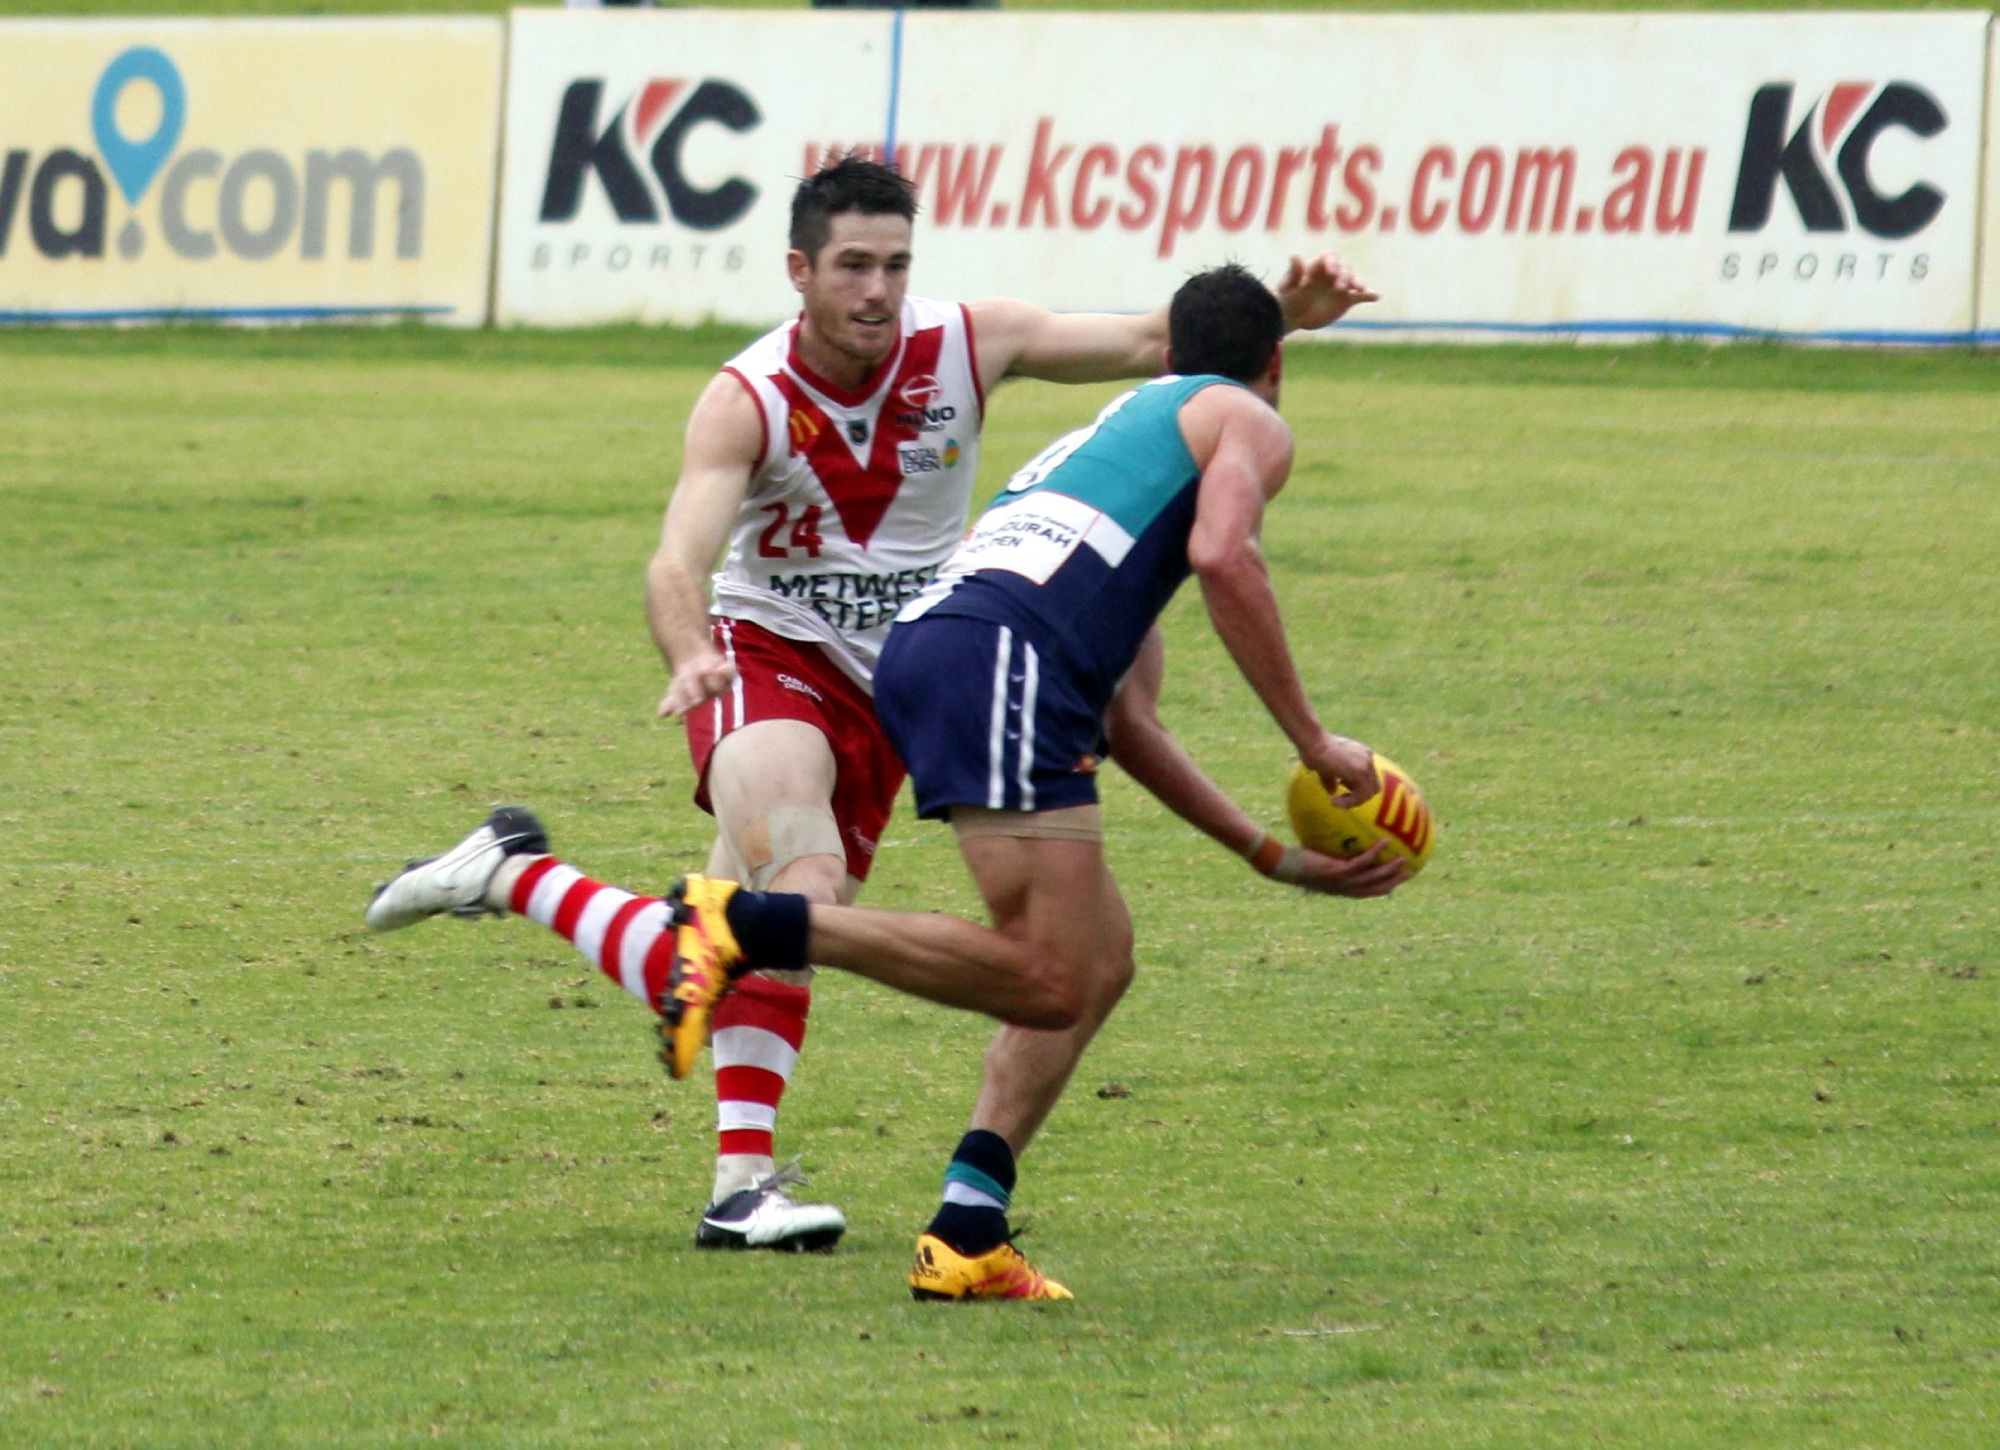 Ben Saunders is free to tackle East Fremantle after being found not guilty of rough conduct.